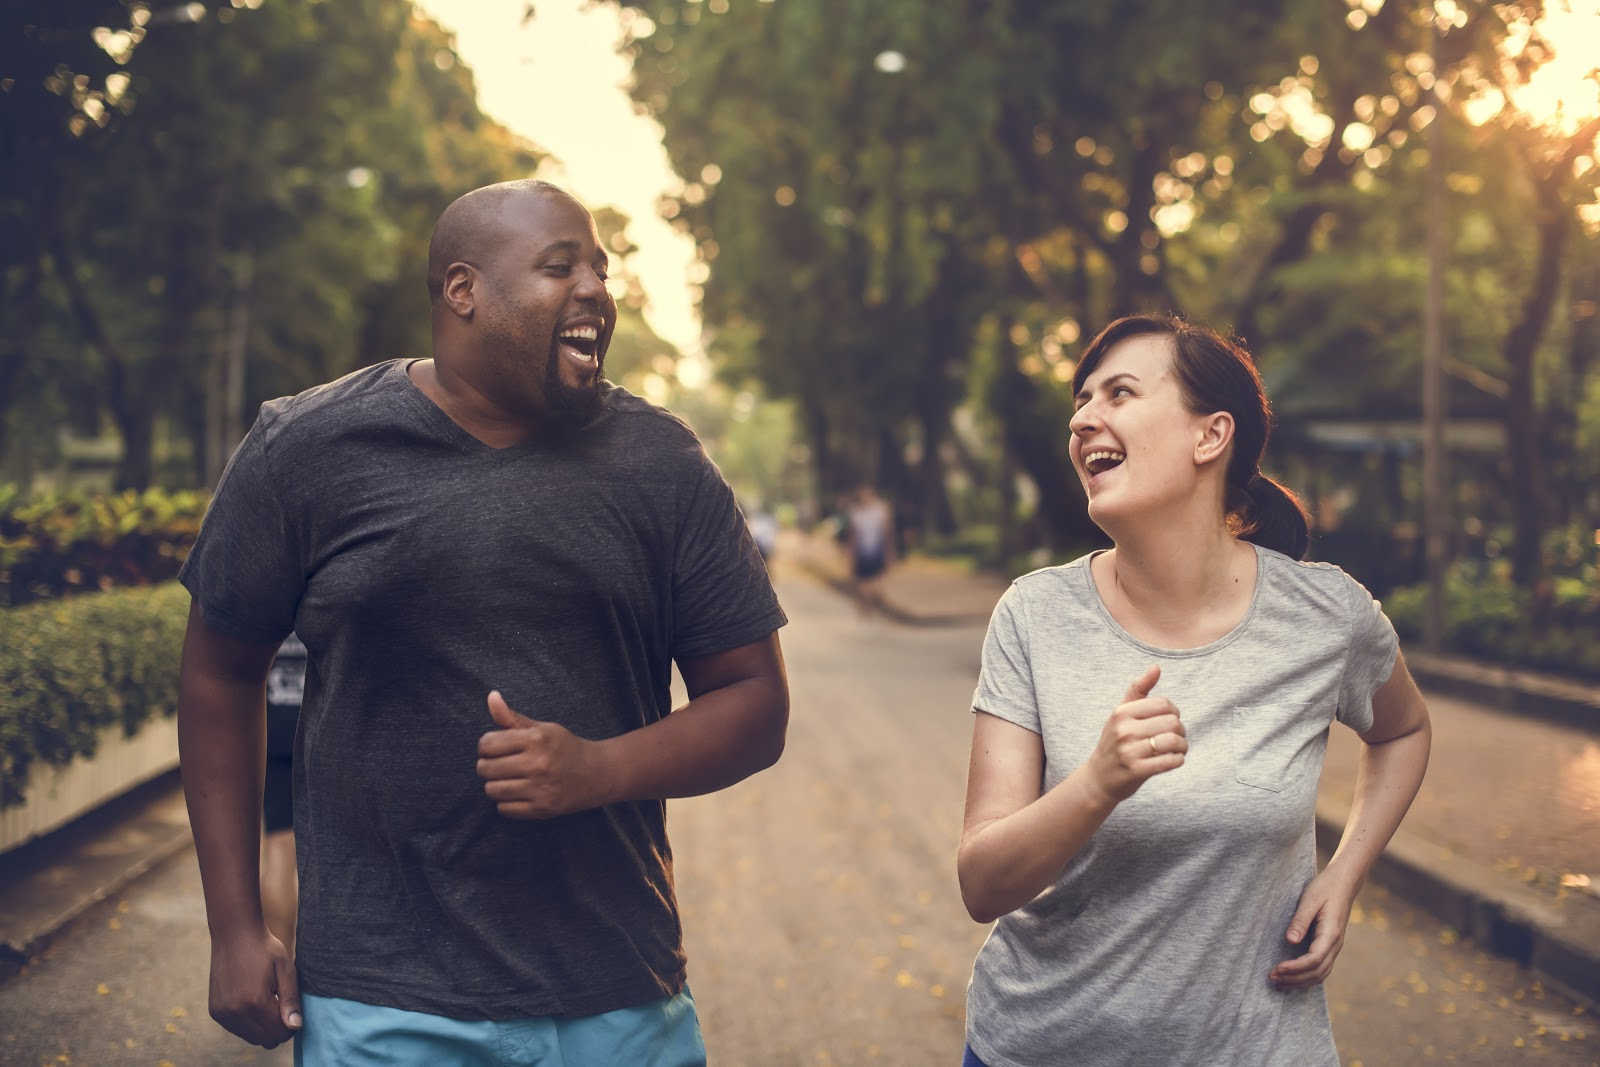 How do you achieve financial wellness: Couple jogging in the park